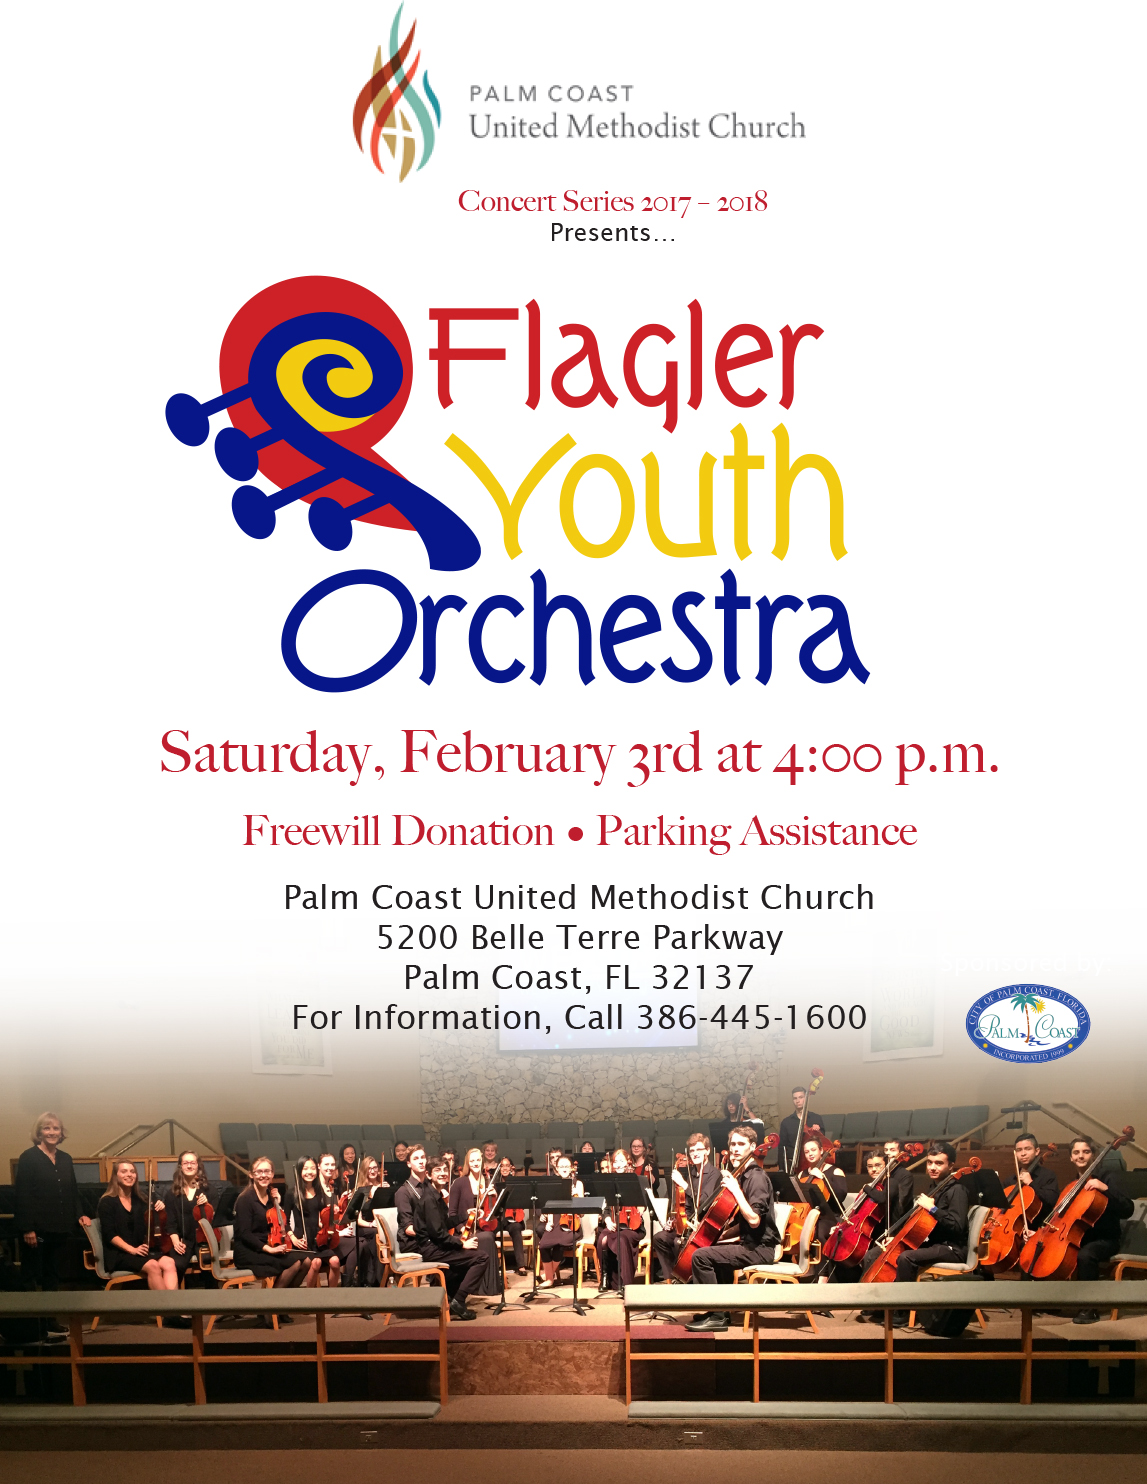 Saturday, February 3, 2018: Harmony Chamber Orchestra Performs in the Palm Coast United Methodist Church's Youth Music Festival